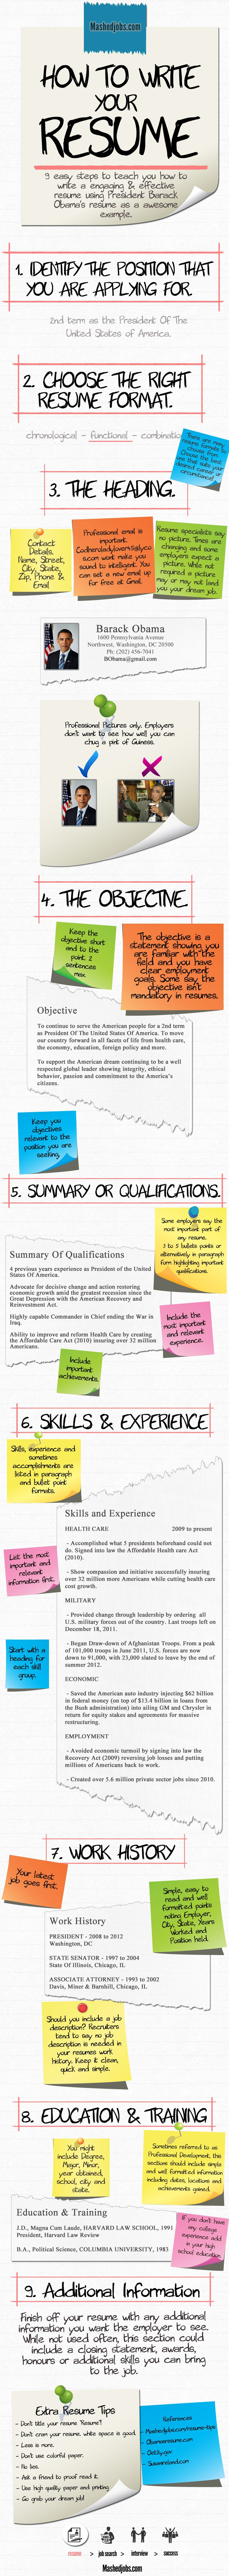 how to write your resume cv infographic infographics how to write your resume cv infographic